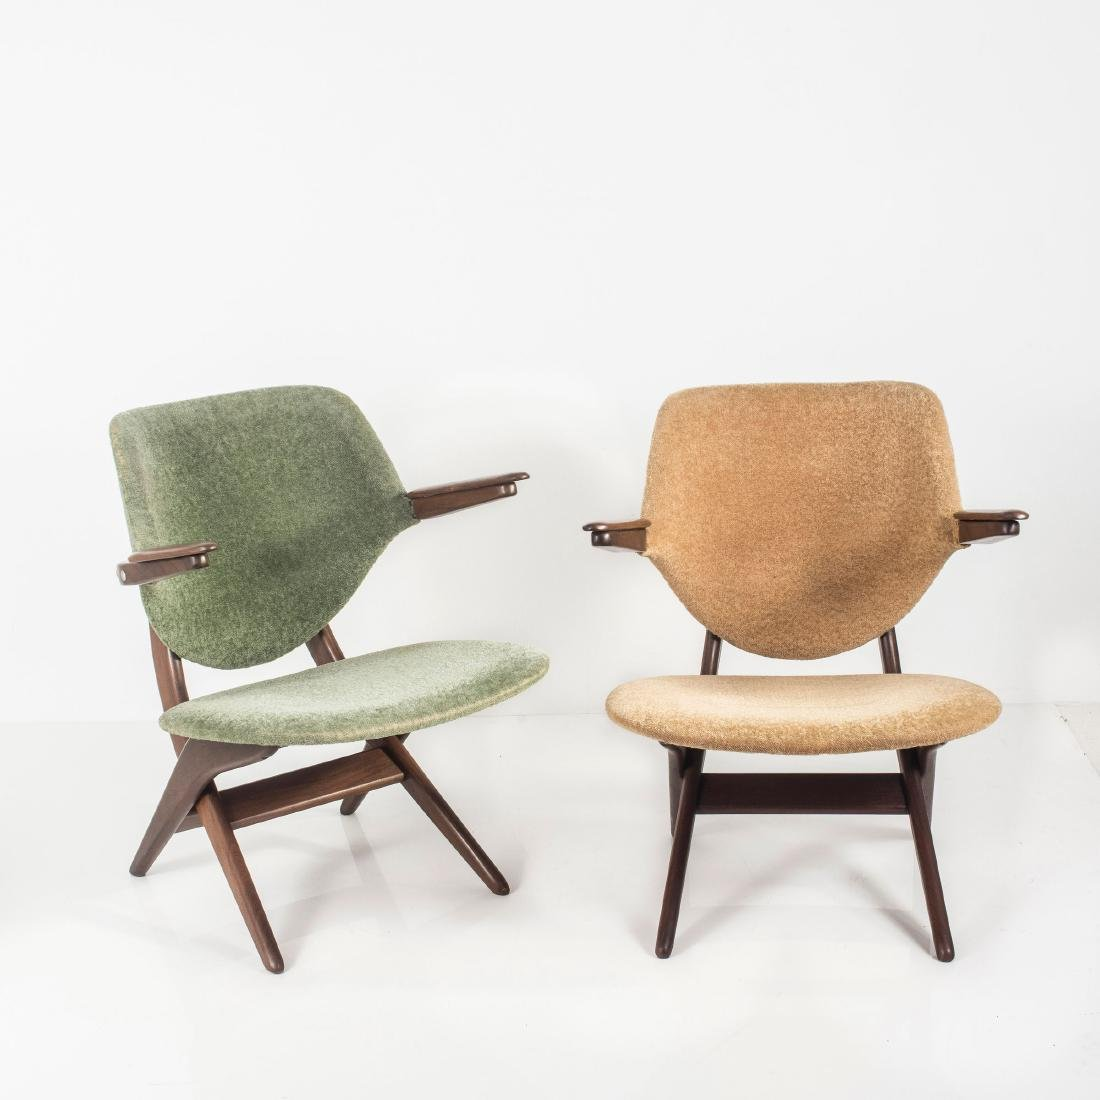 Two 'Pelican' easy chairs, c. 1955 - 2